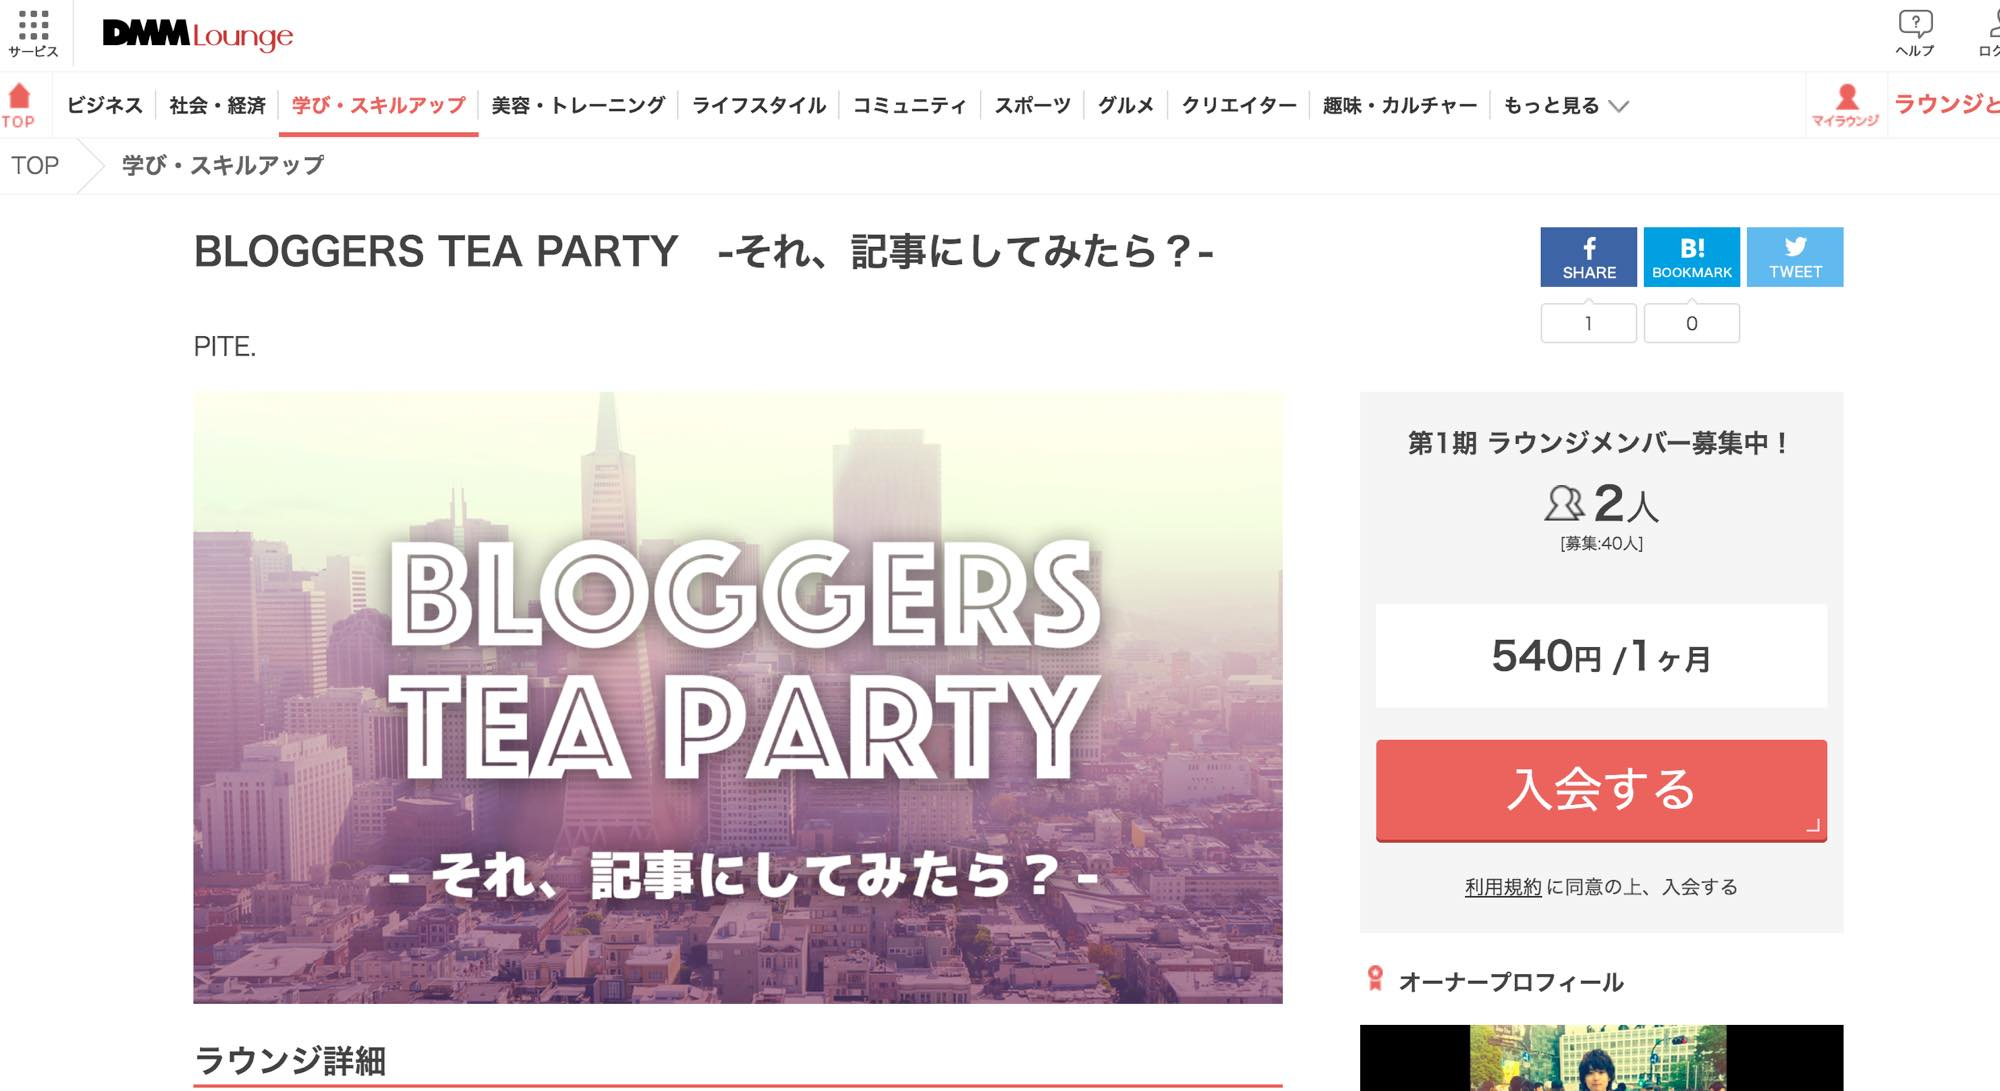 bloggers-tea-party5